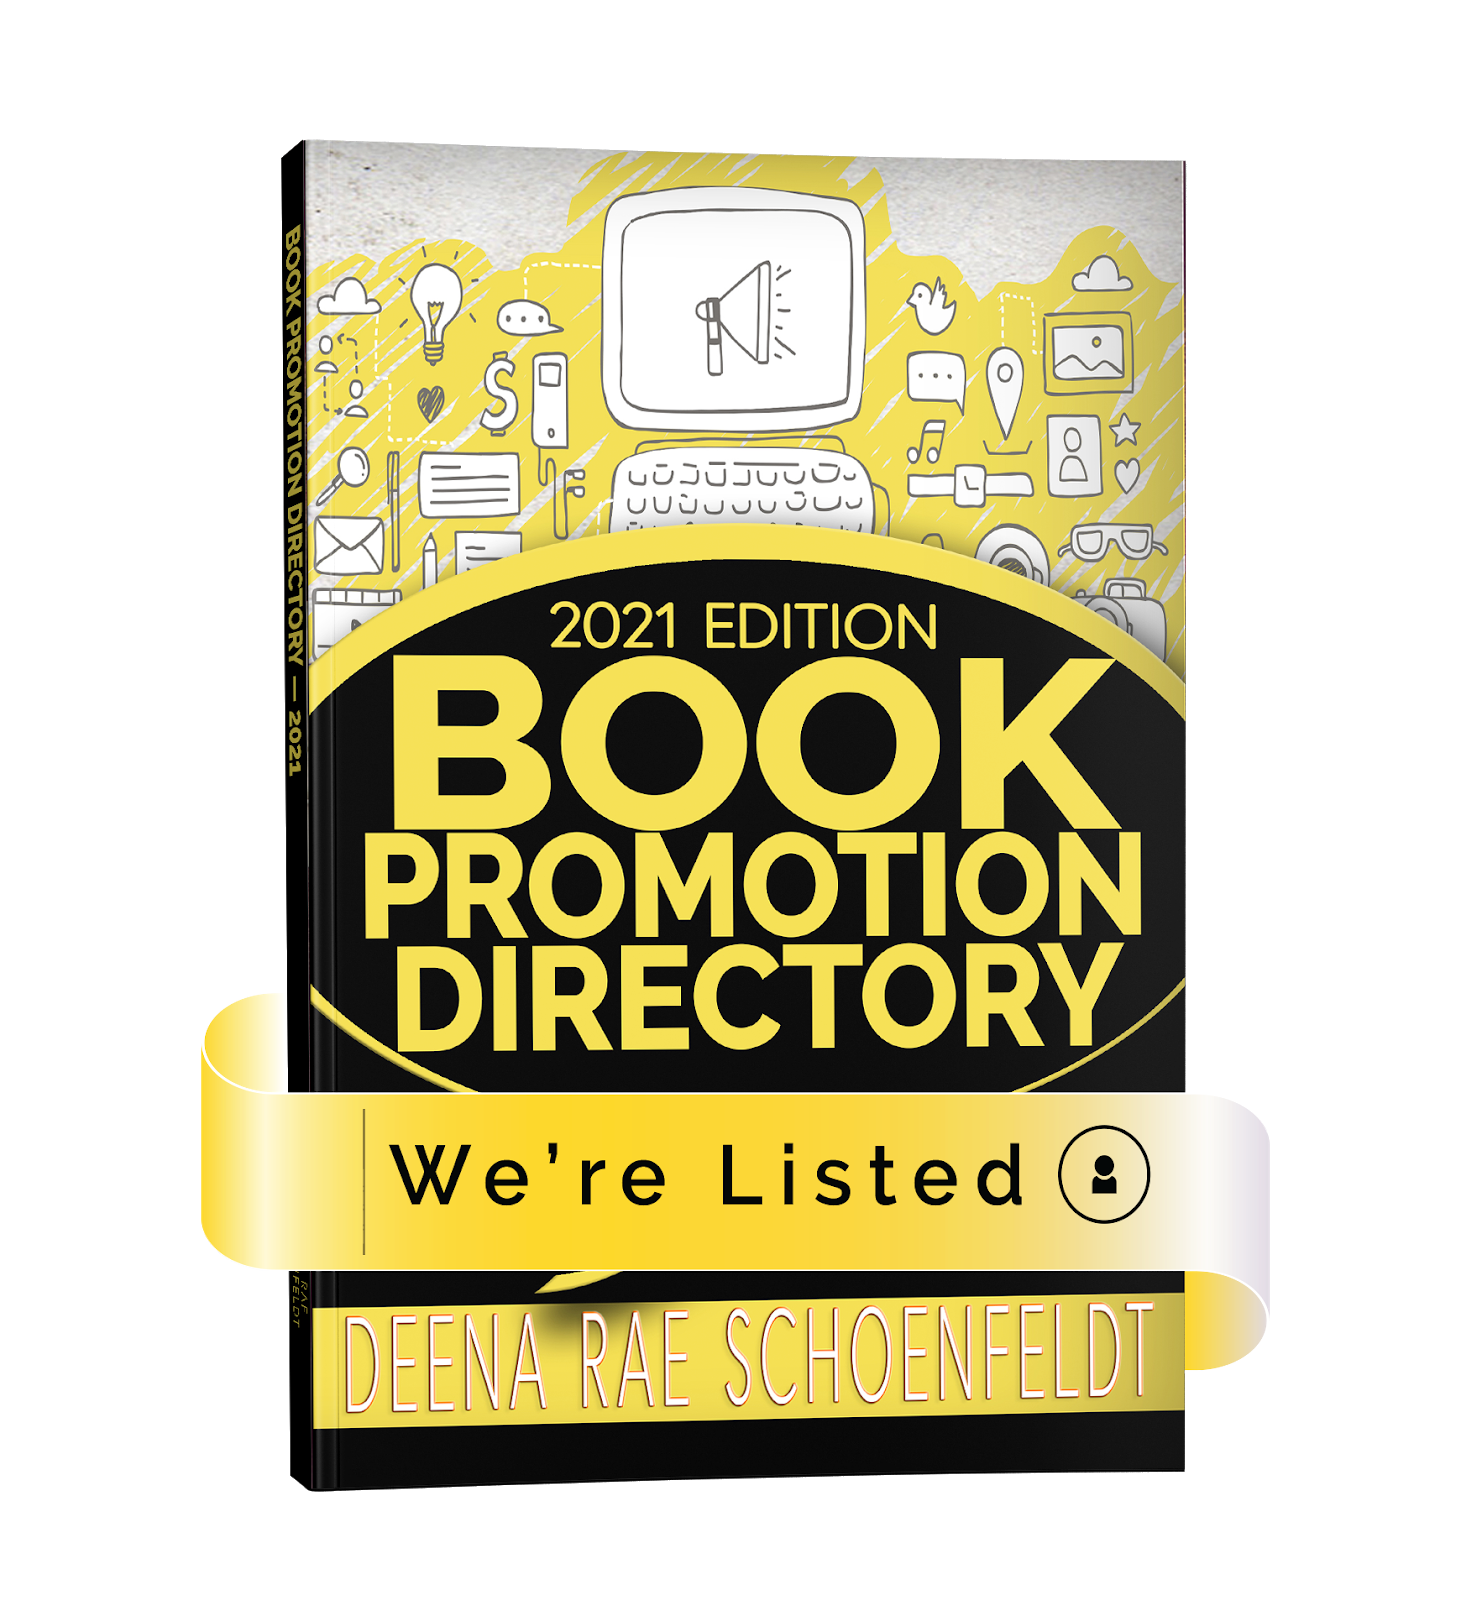 We're Listed - 2021 Book Promotion Directory